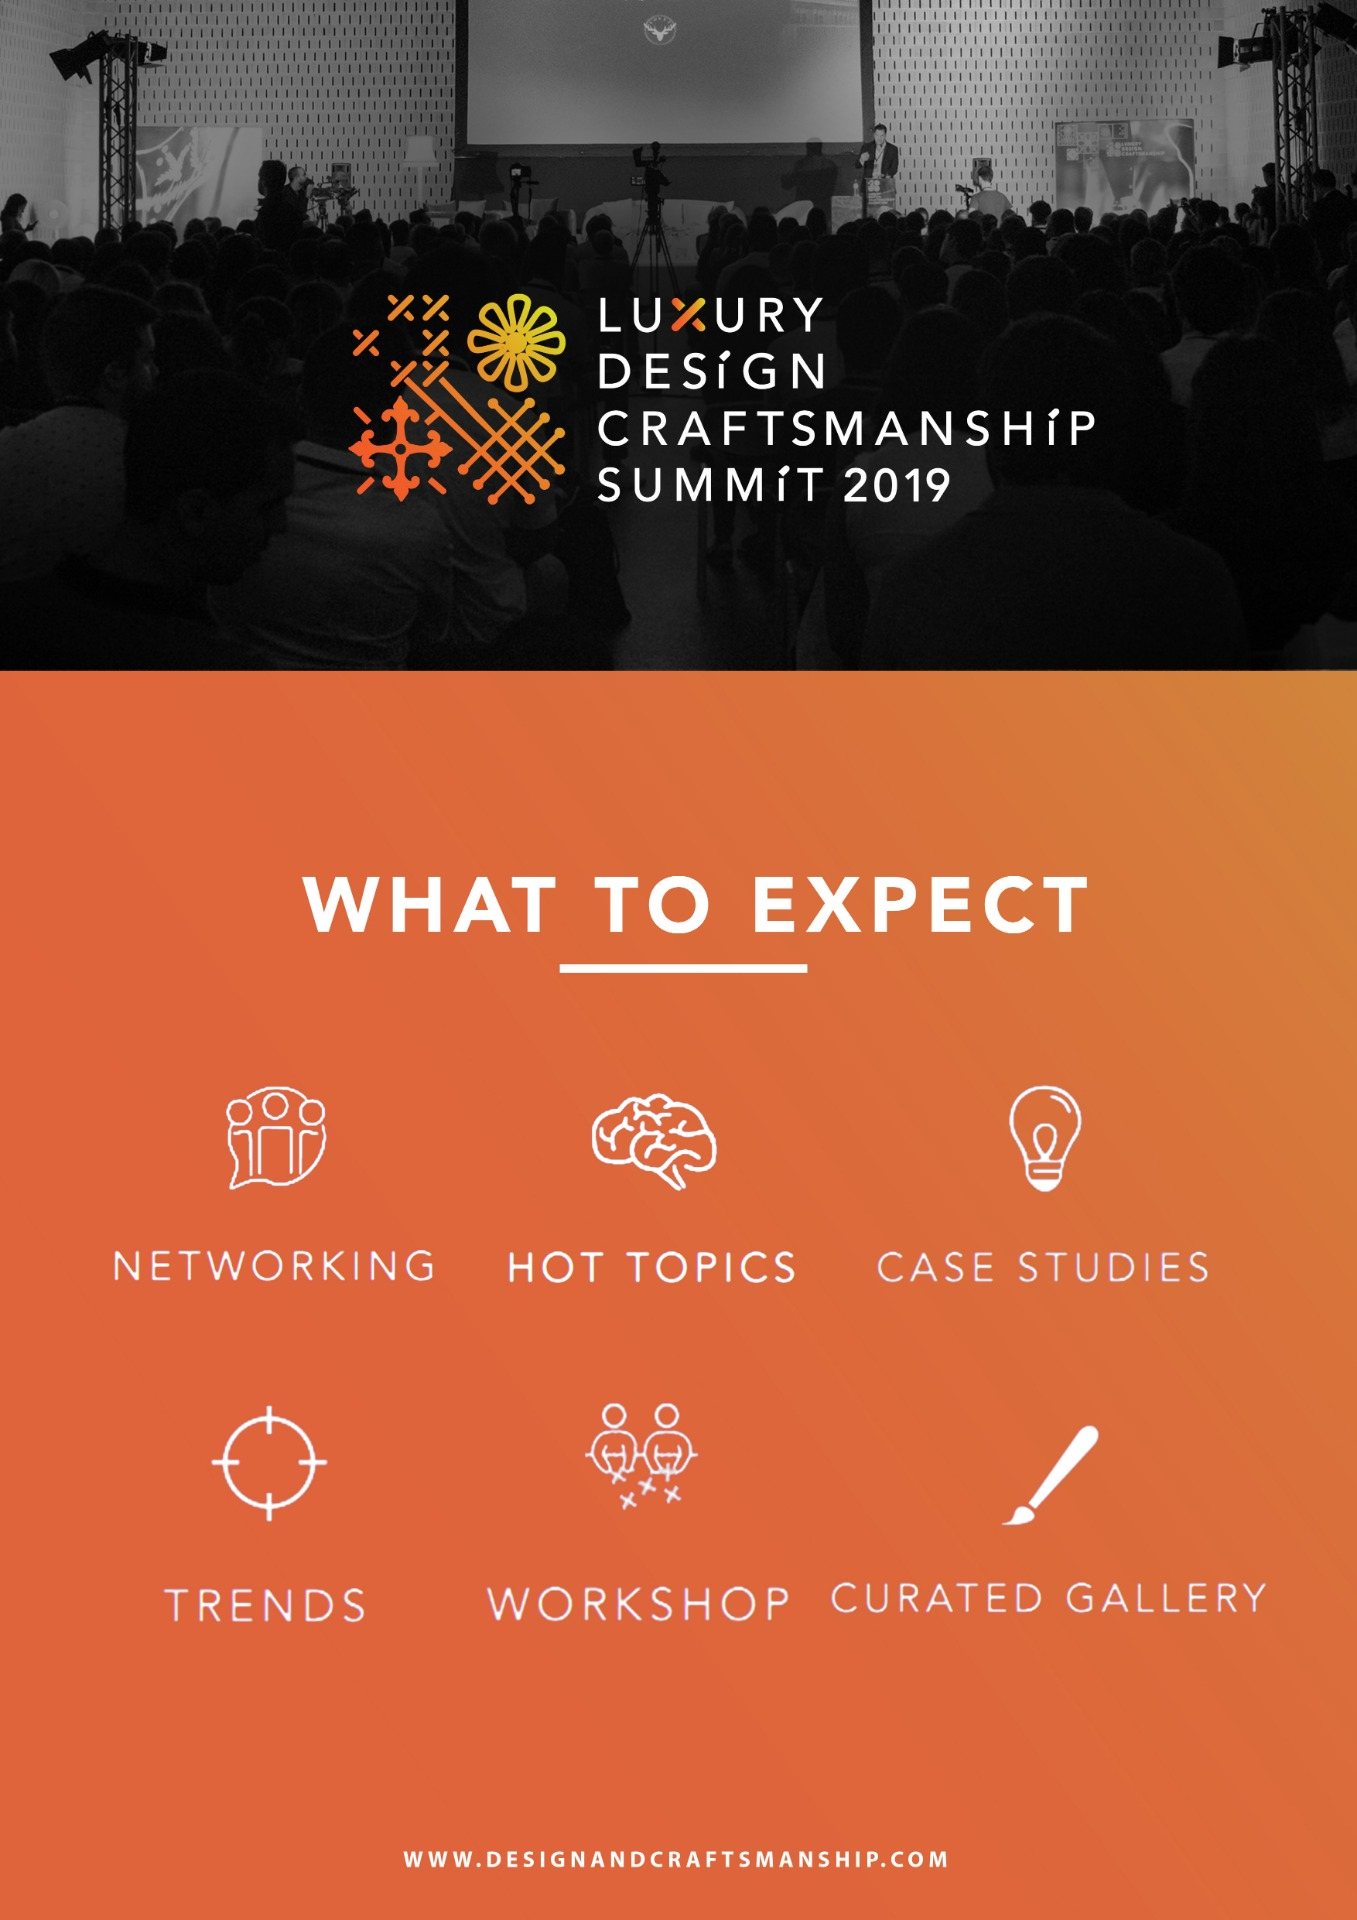 Luxury Design+Craftsmanship Summit, porto, covet group, arts and crafts, crafstmanship, Luxury Design luxury design+craftsmanship summit Celebrating Arts & Crafts in Porto – Luxury Design+Craftsmanship Summit 2019 Celebrating Craftsmanship The Luxury DesignCraftsmanship Summit 2019 1